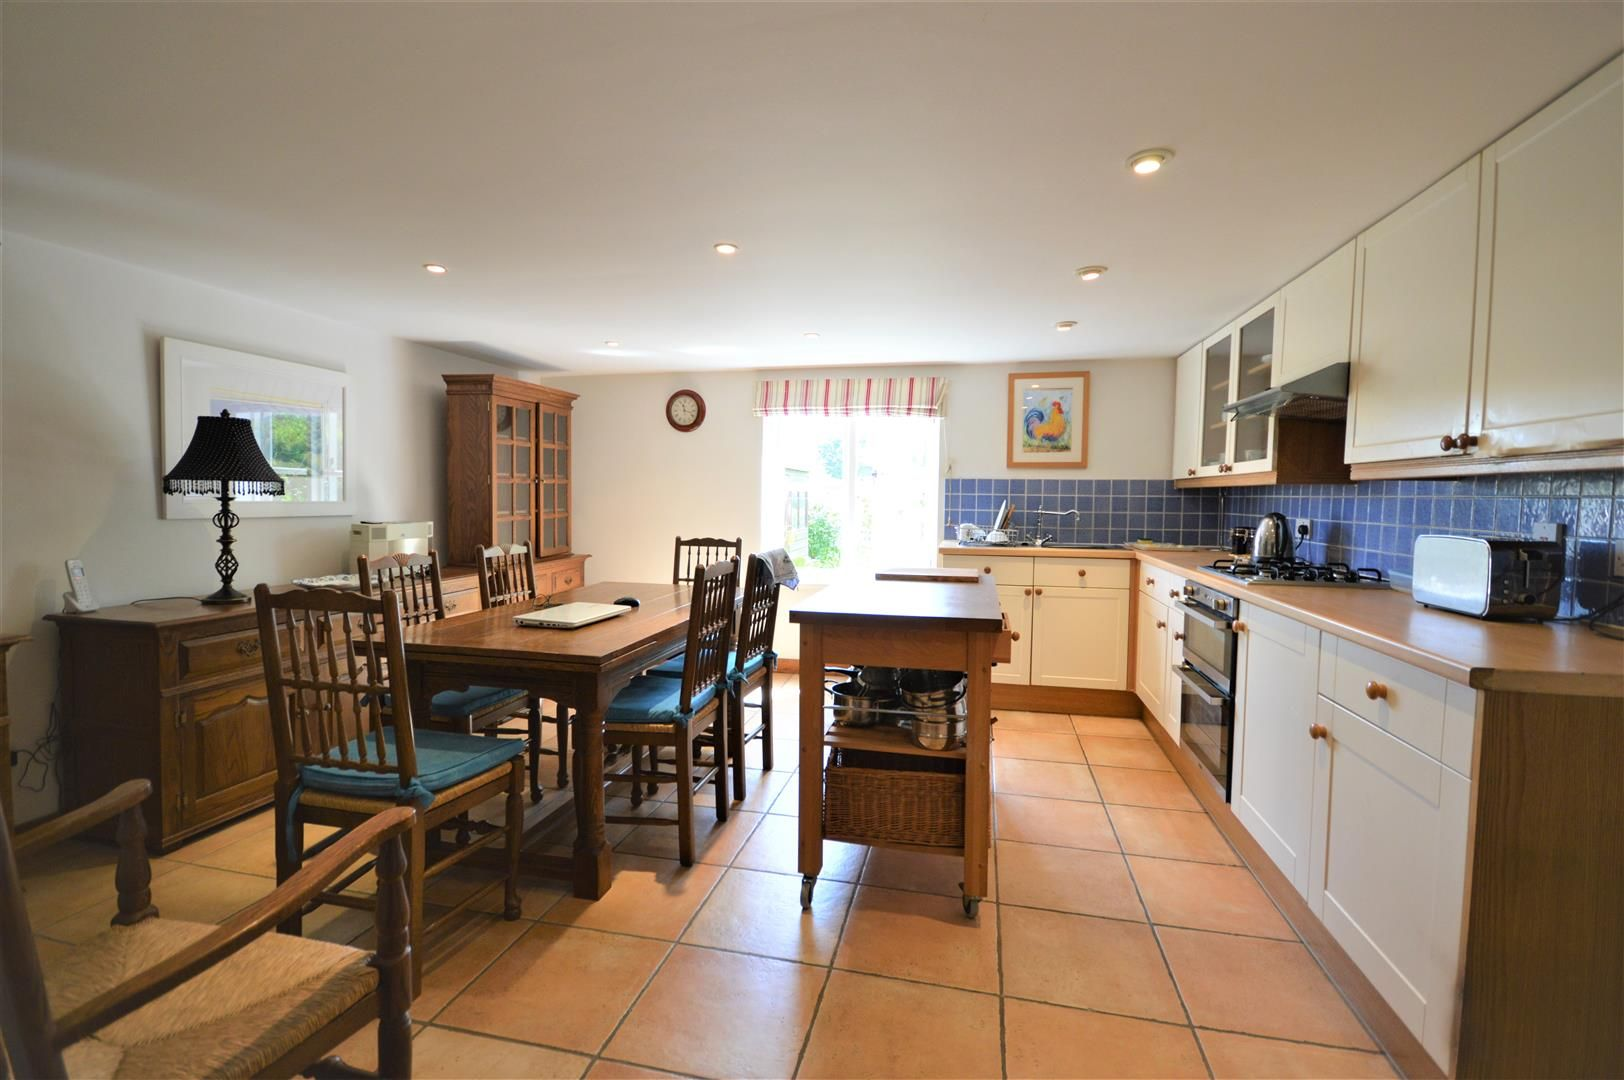 3 bed barn-conversion for sale in Stoke Prior  - Property Image 3